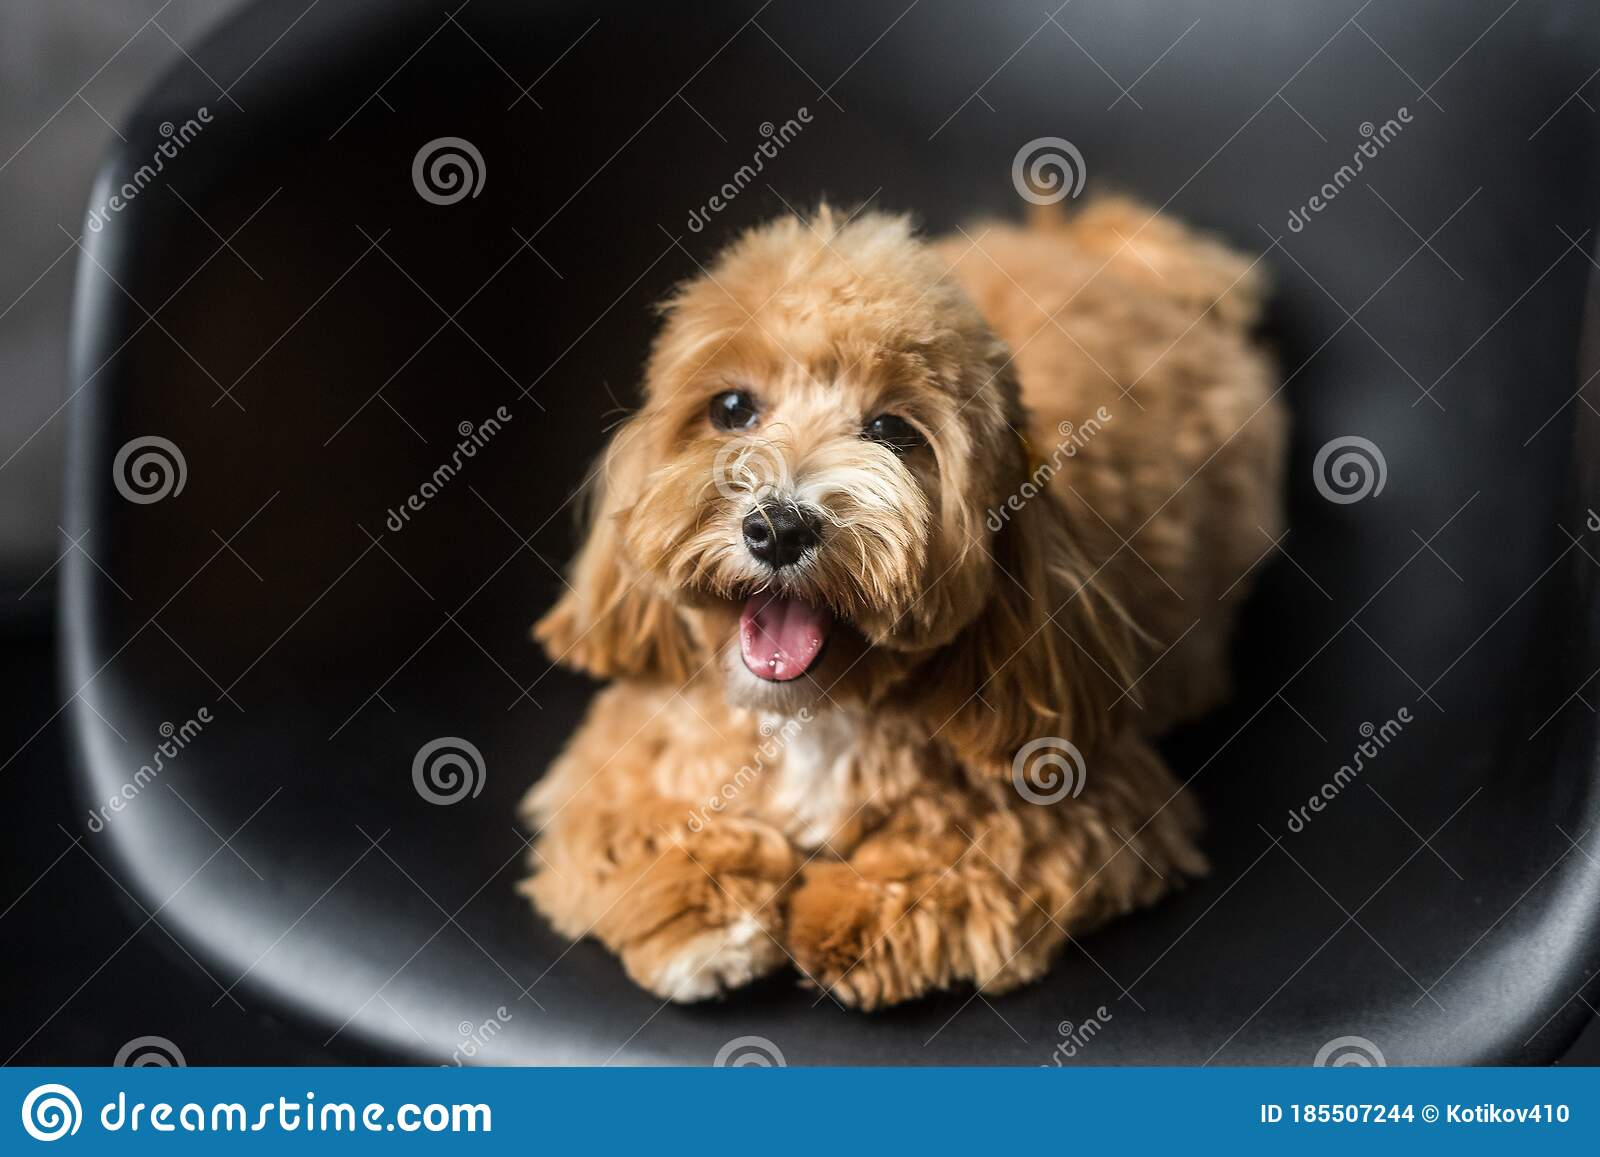 Toy Poodle Lying On Black Chair And Show Tongue In Camera Stock Photo Image Of Happiness Breed 185507244